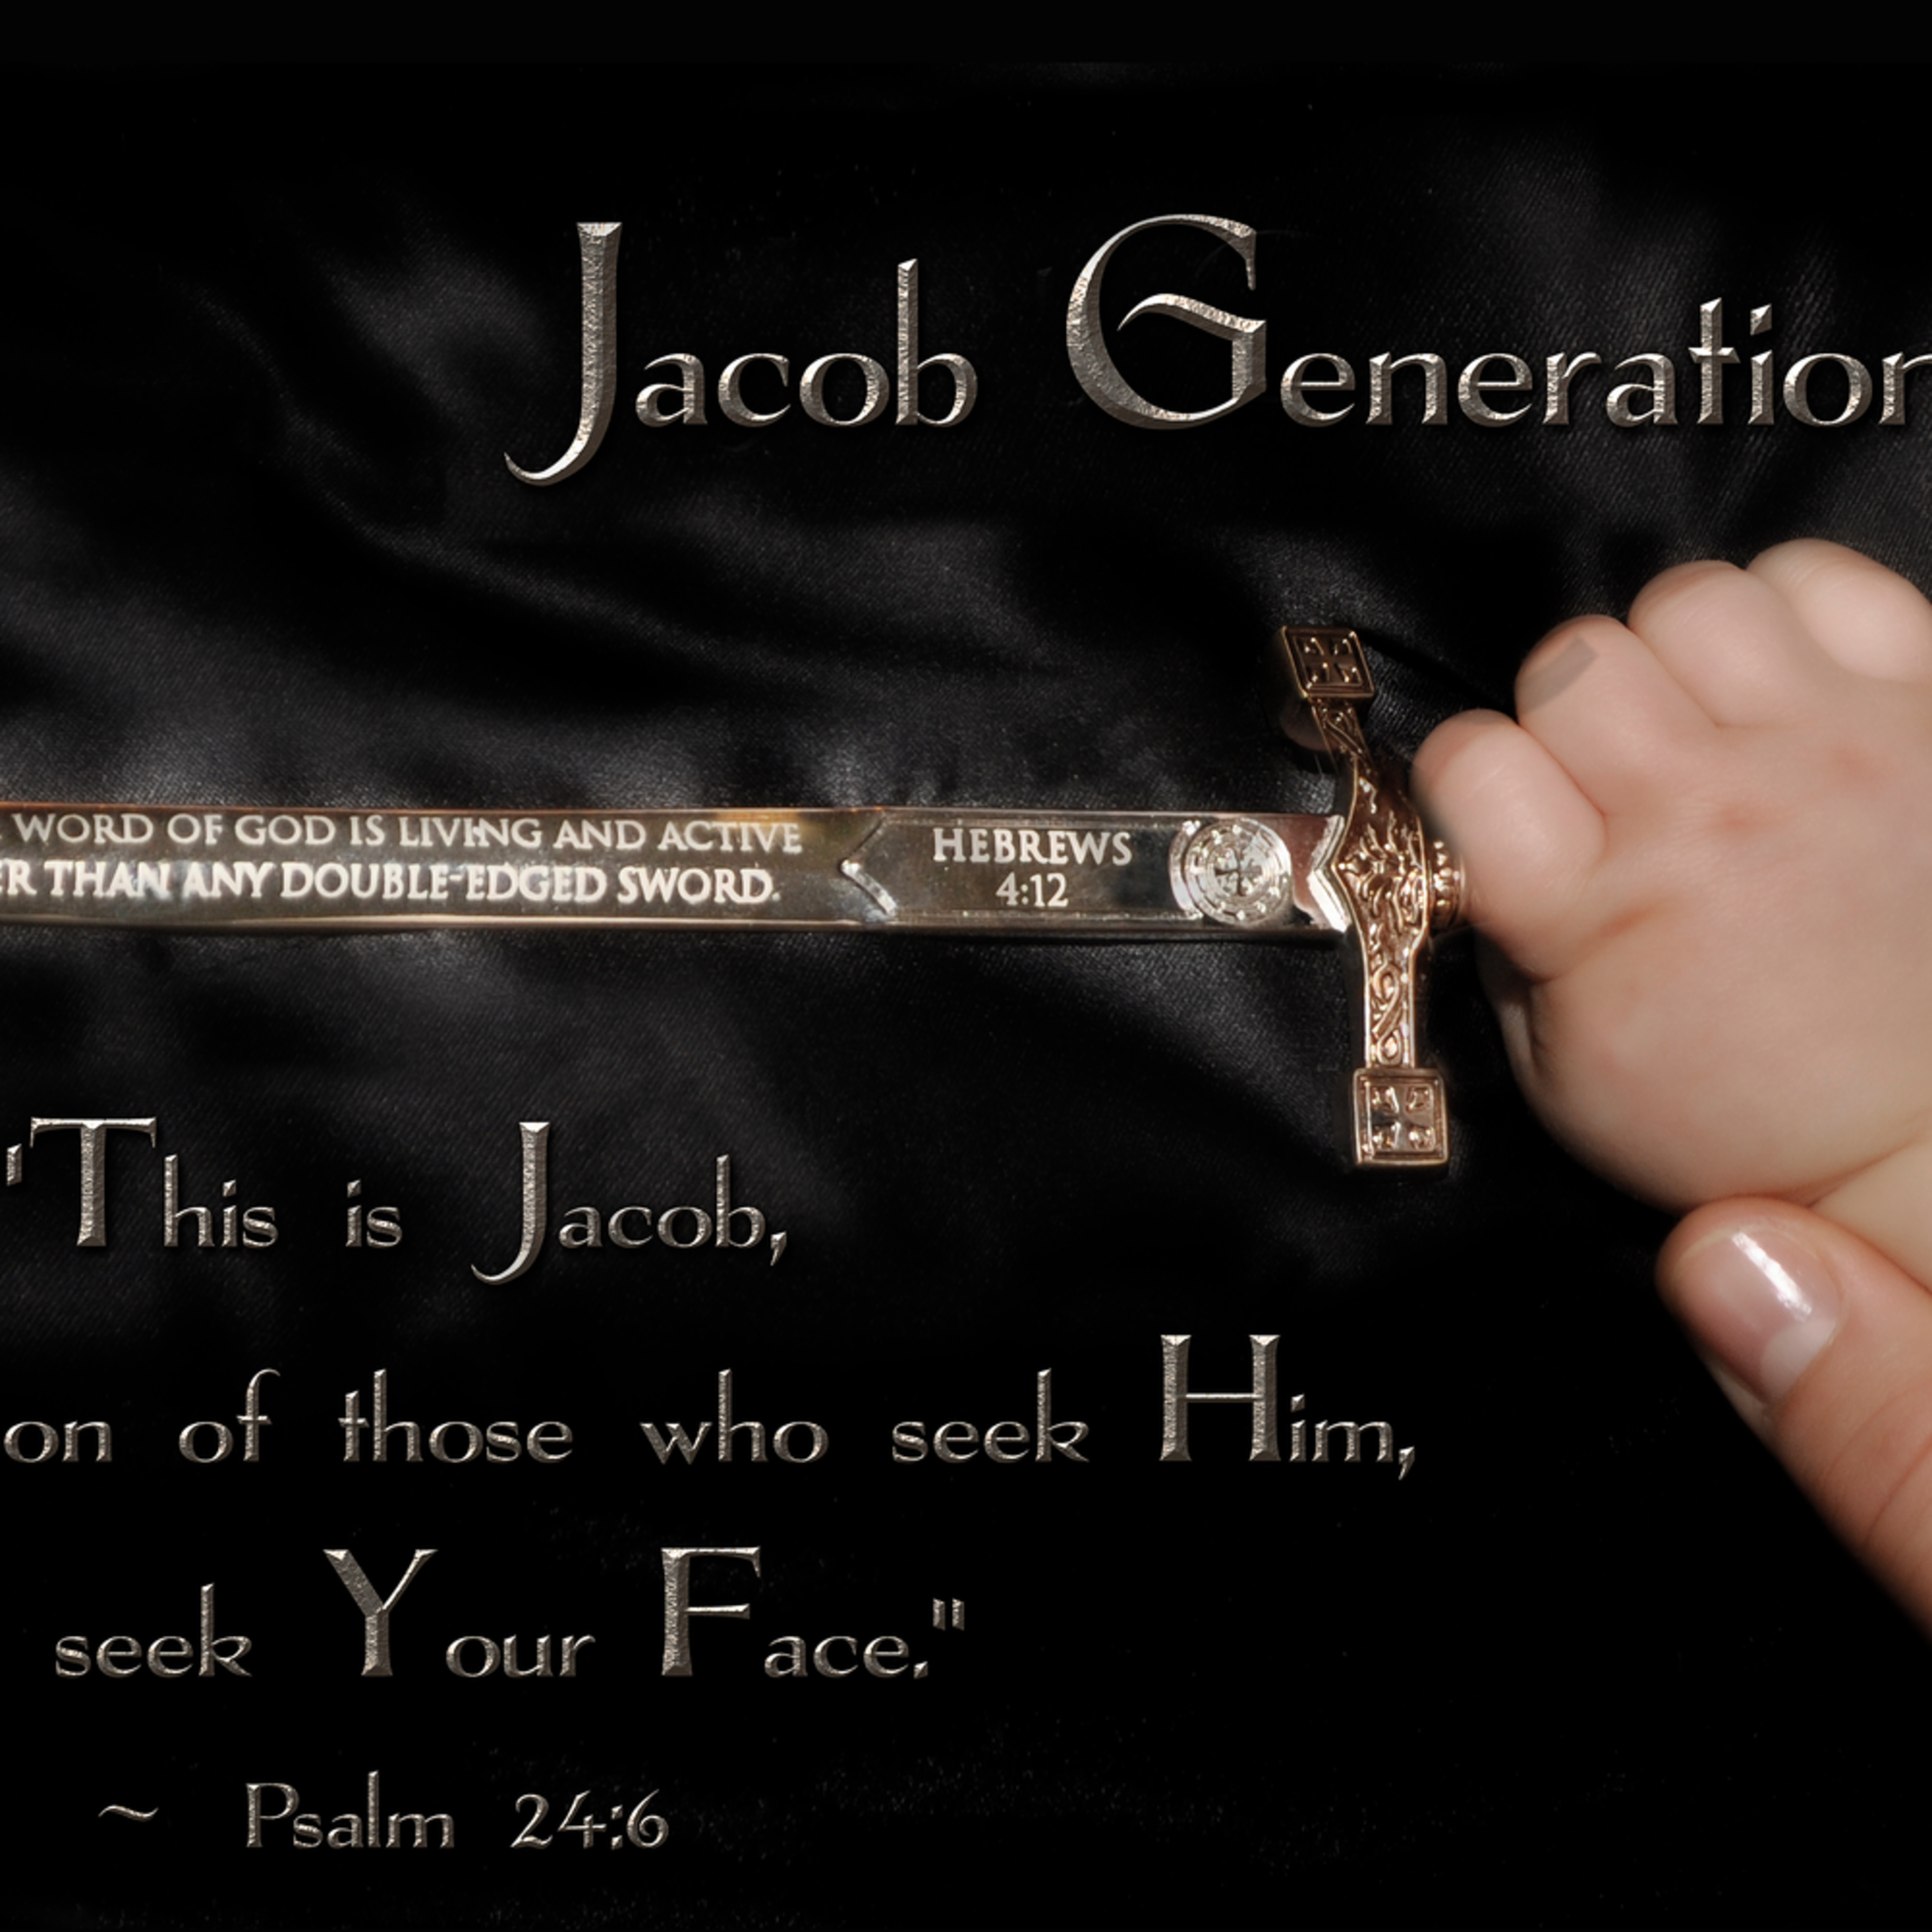 Jacob generation arising by constance woods kbo67z